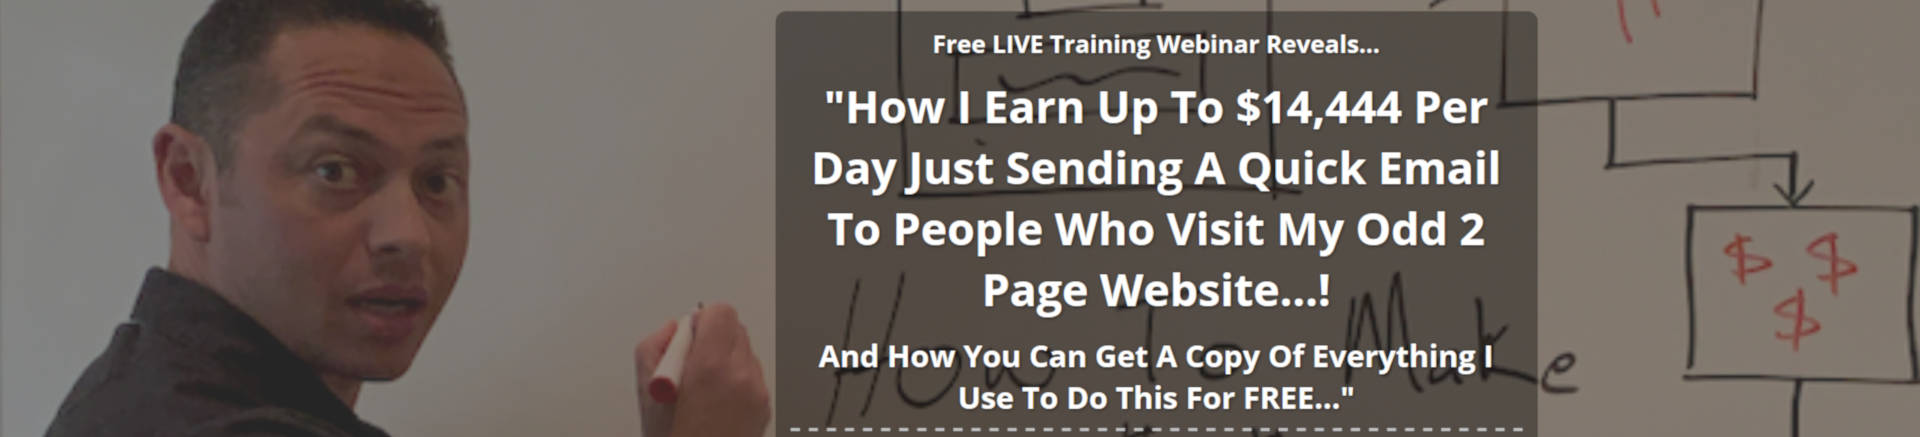 Training Program 1k A Day Fast Track Warranty Extension Offer March